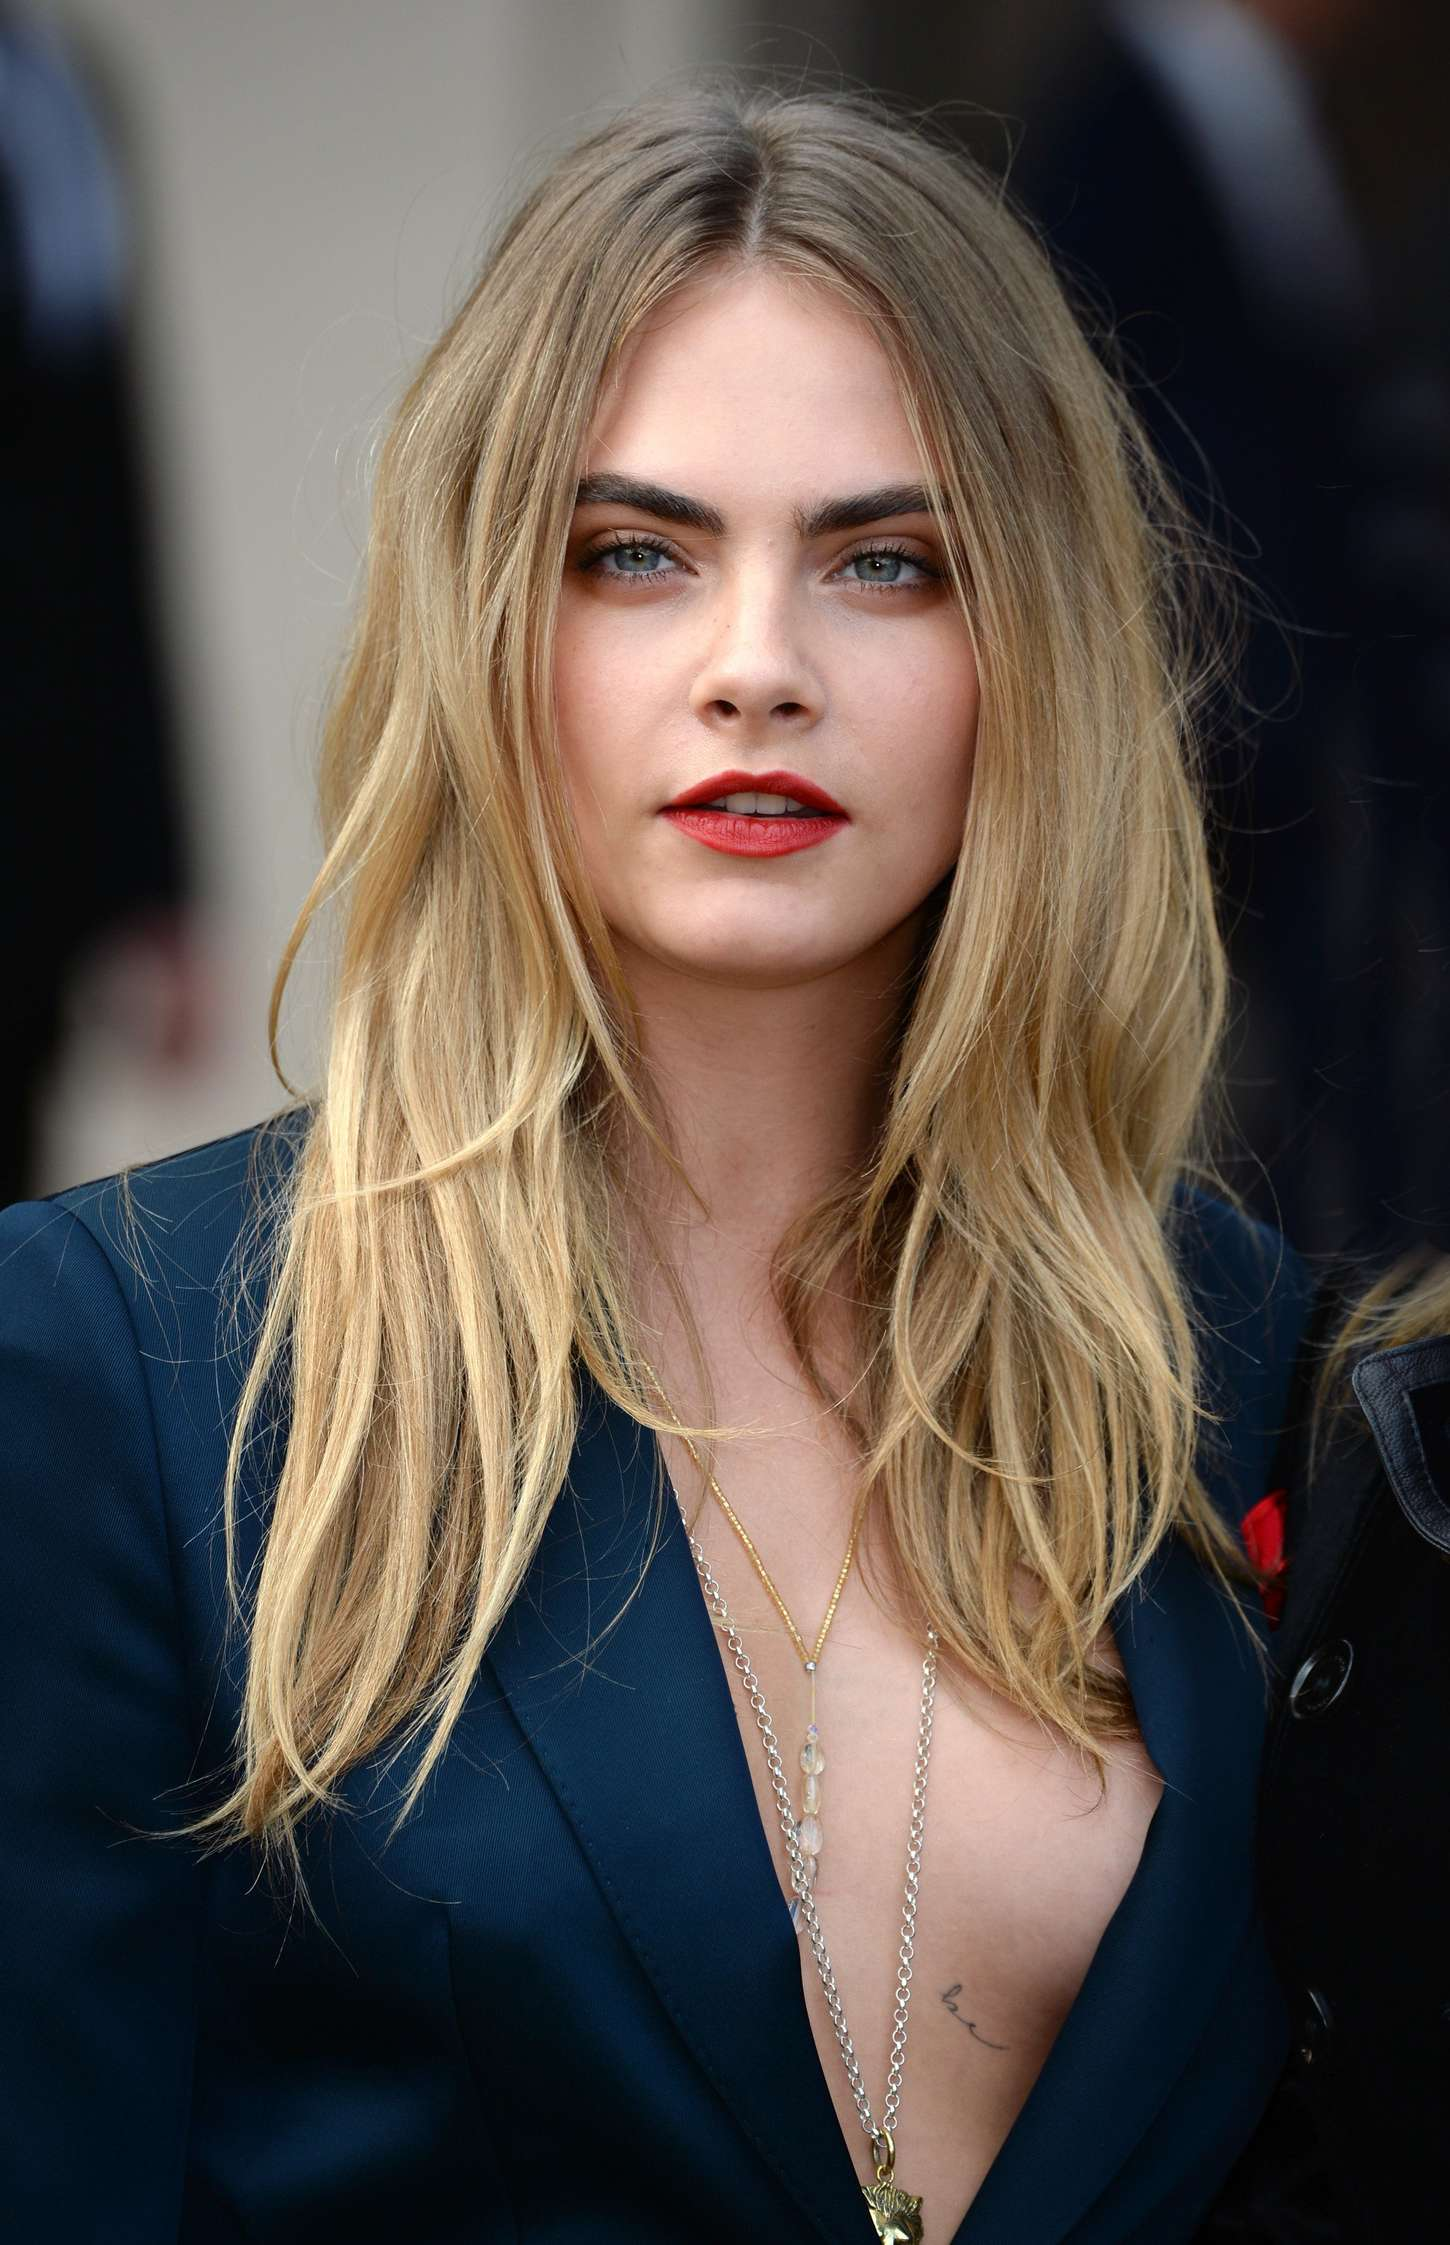 Cara Delevingne Iphone Wallpaper Posted By Ethan Thompson